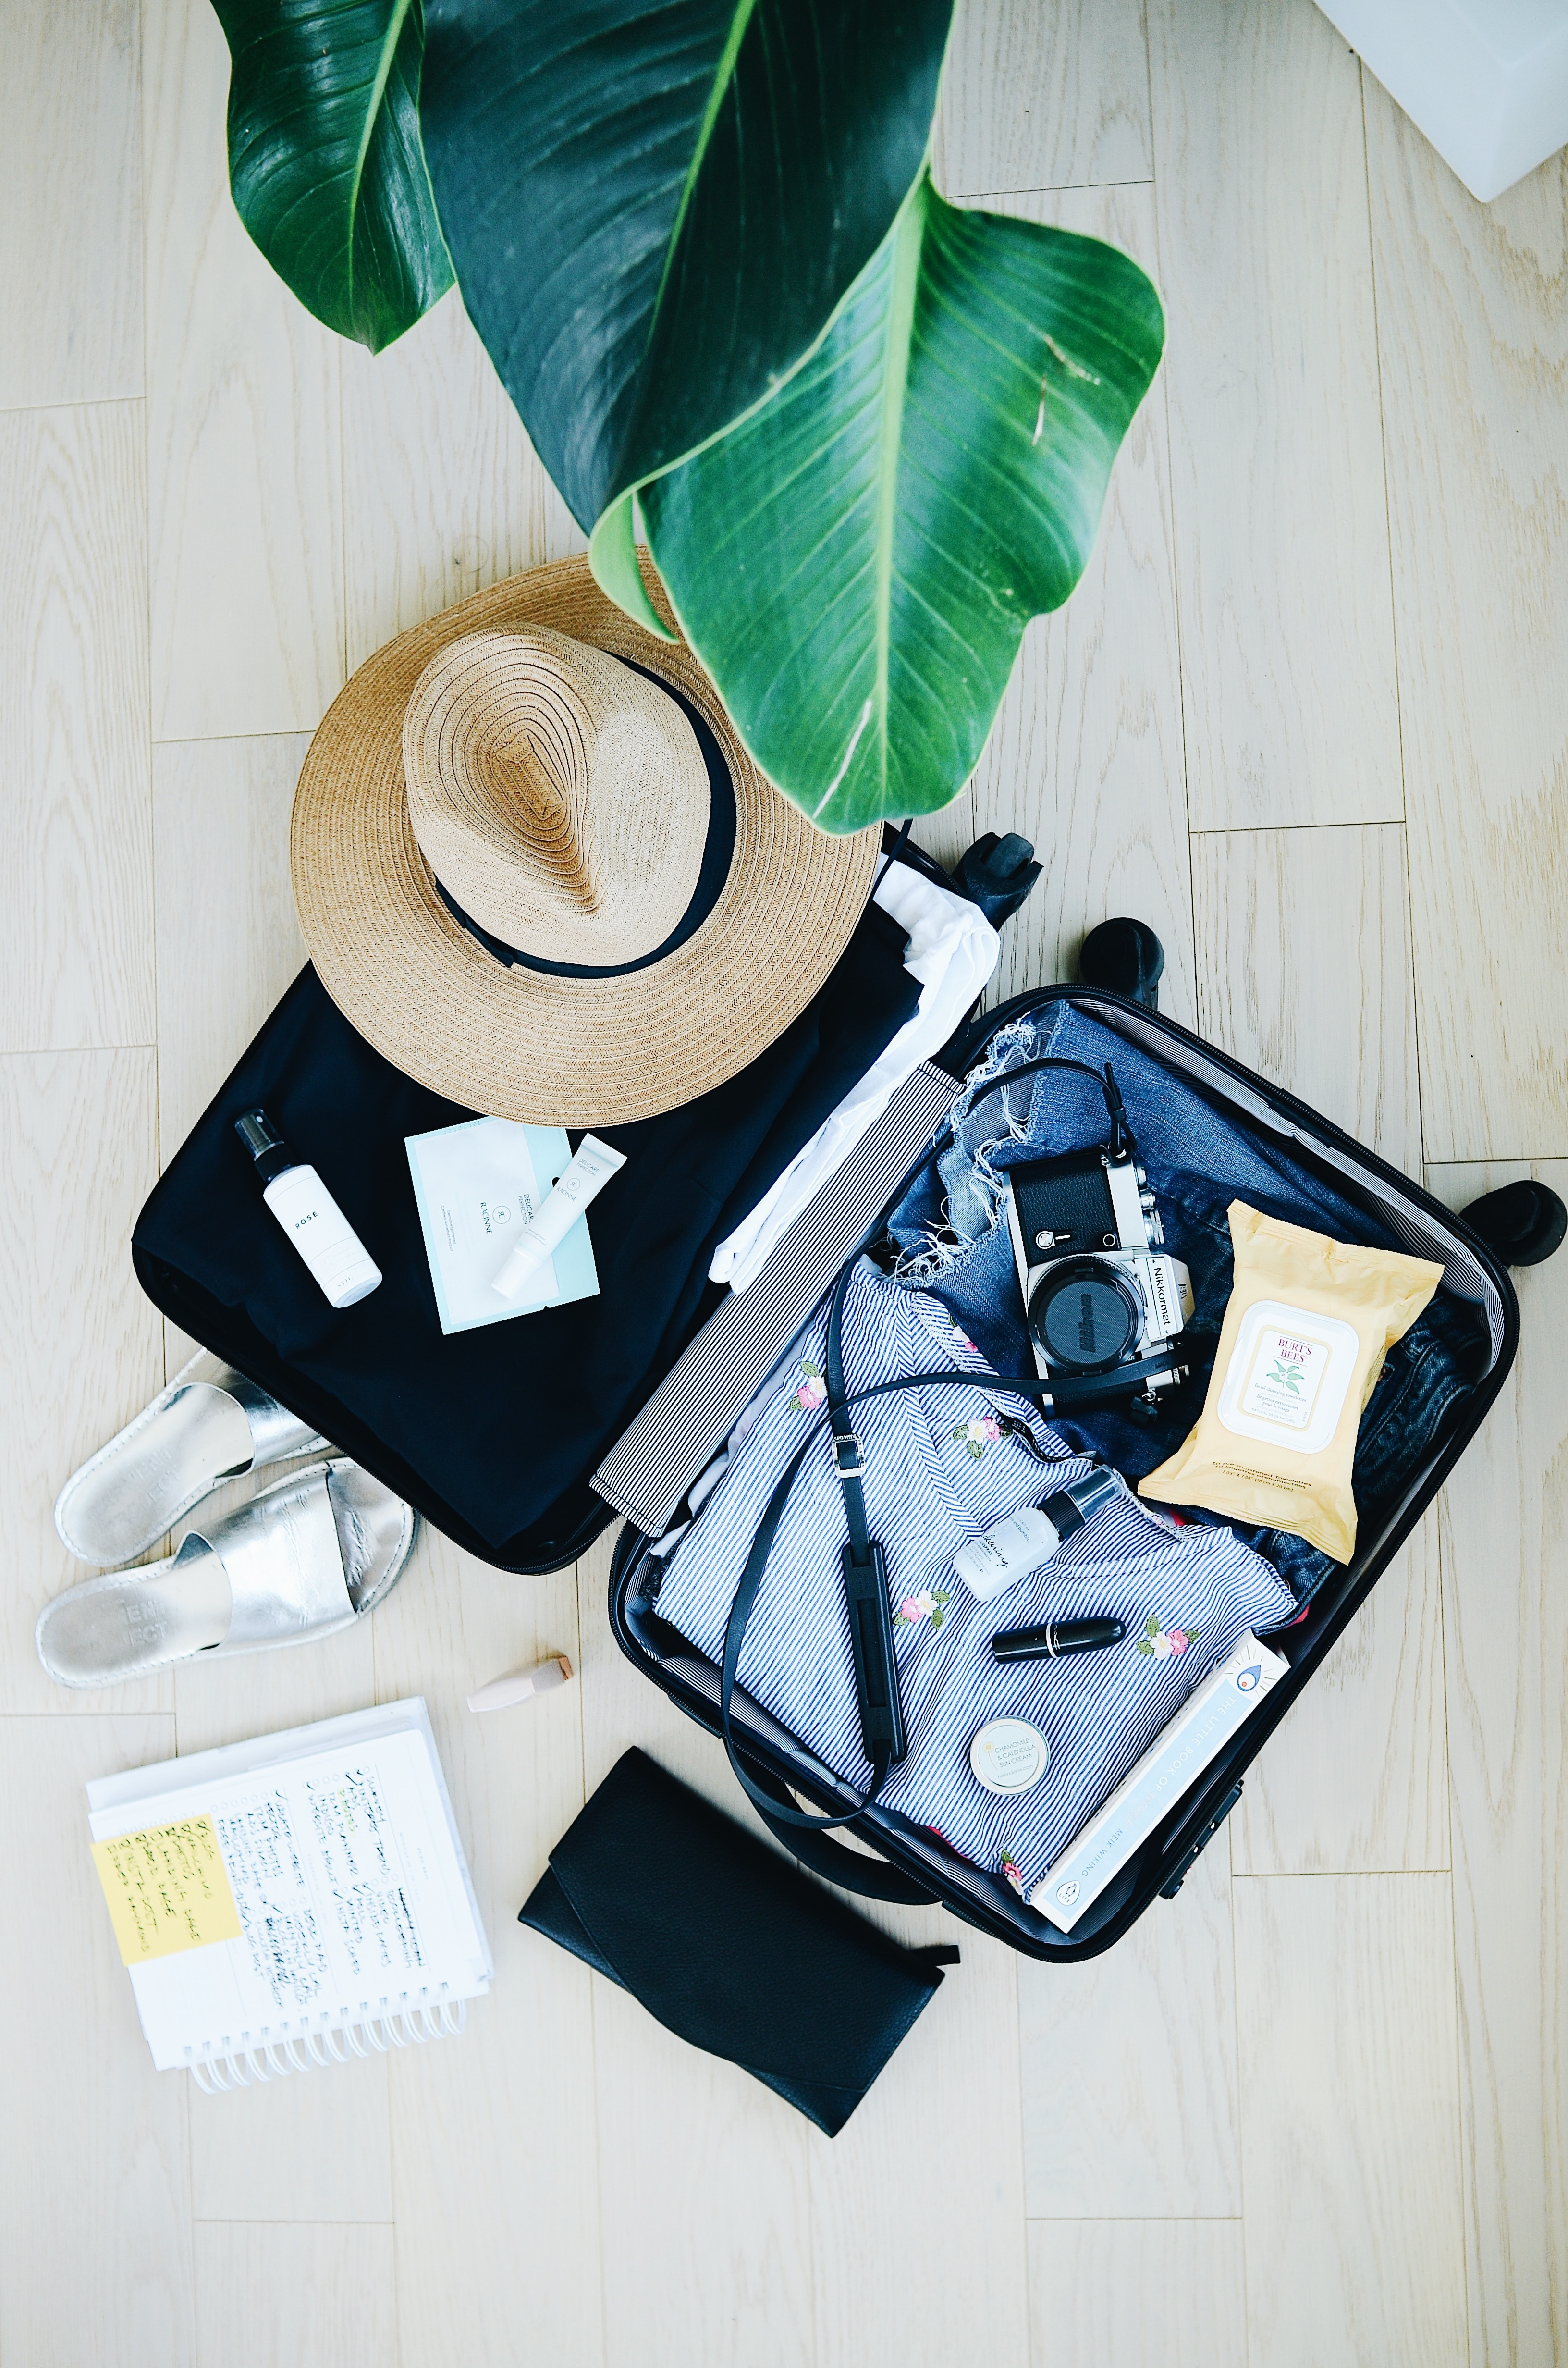 Eco Friendly Travel Products for Responsible Travelers